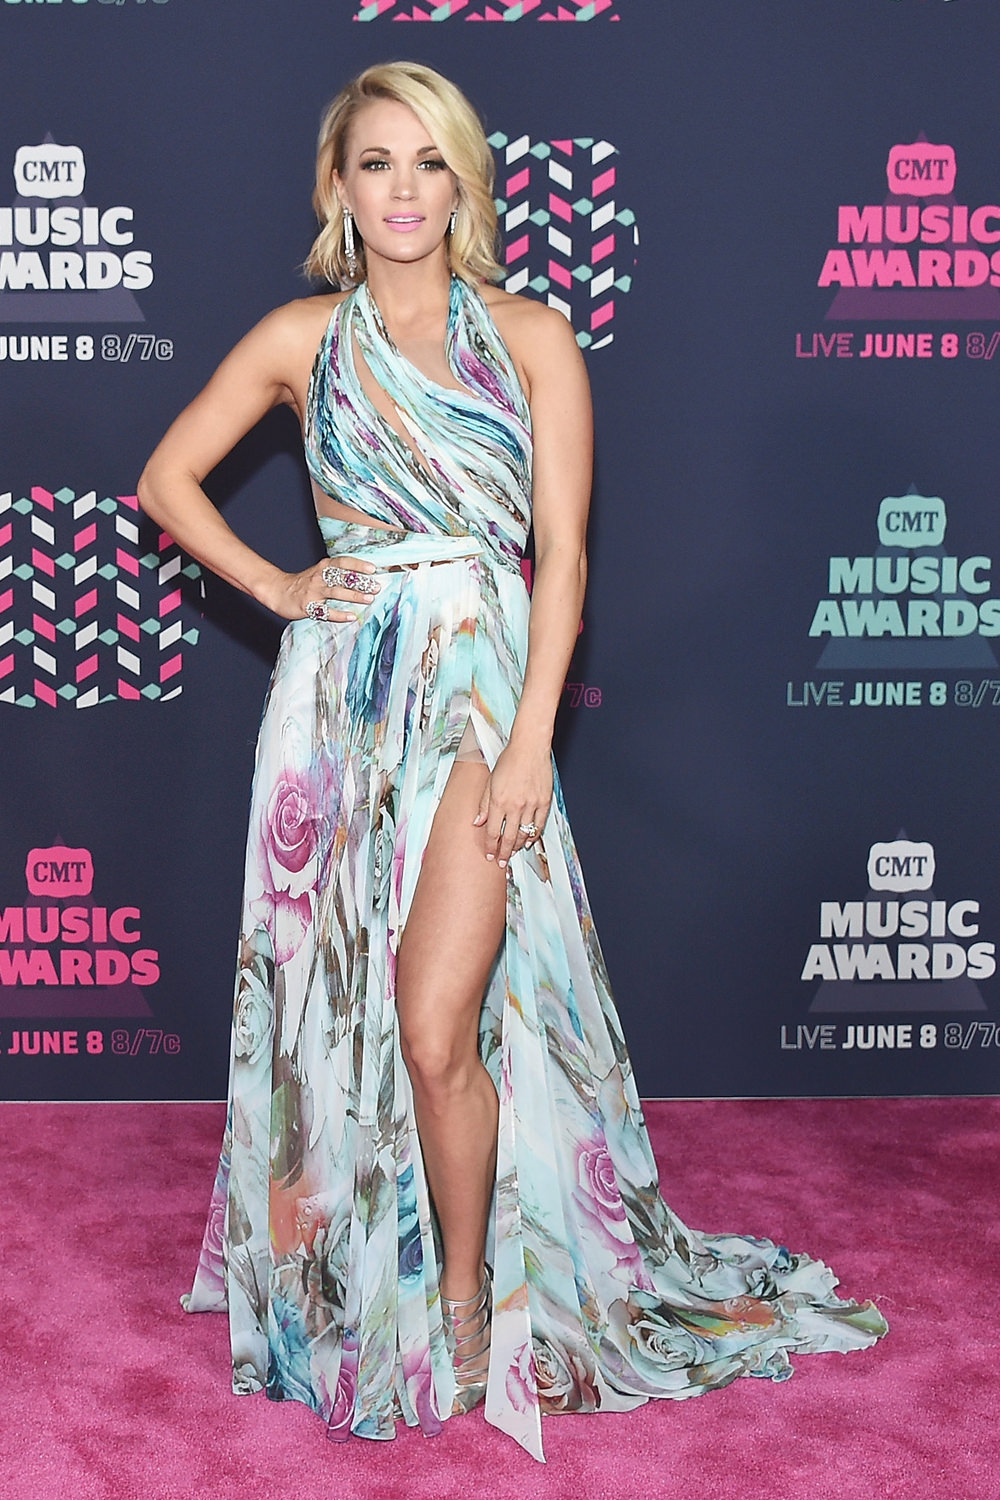 Carrie-Underwood-2016-CMT-Music-Awards-Red-Carpet-Fashion-Mikael-D-Tom-Lorenzo-Site (1)